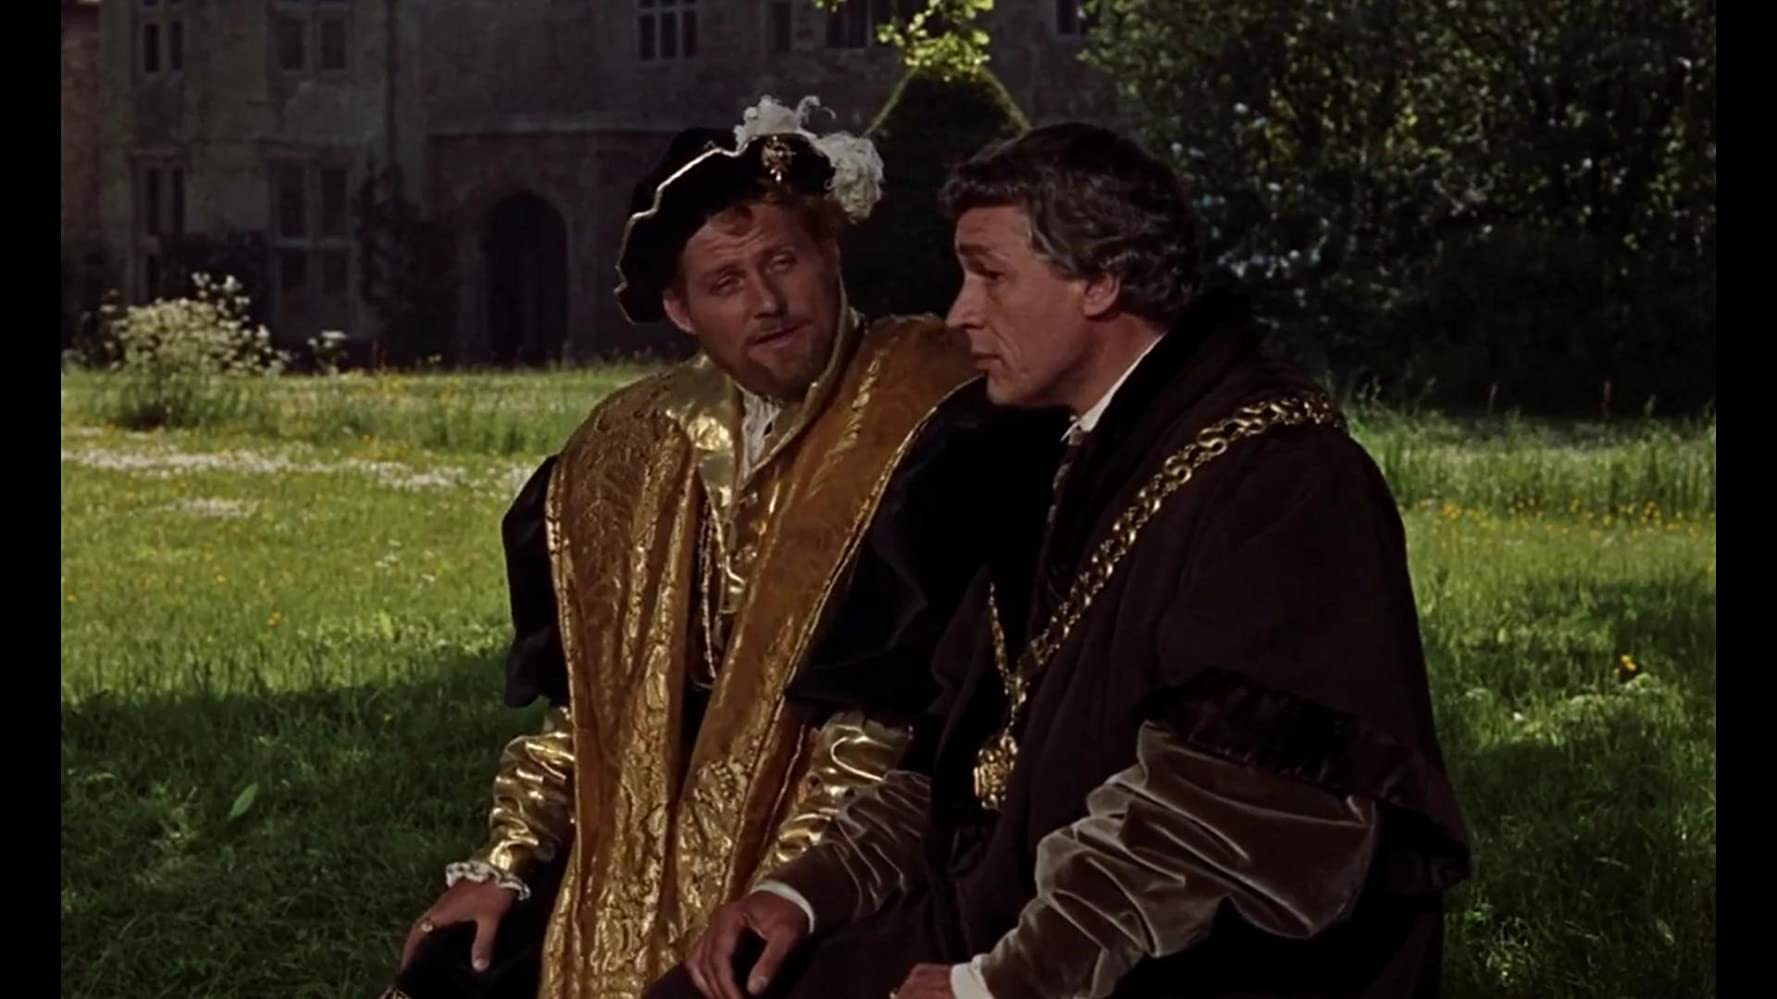 Robert Shaw and Paul Scofield in A Man for All Seasons (1966)